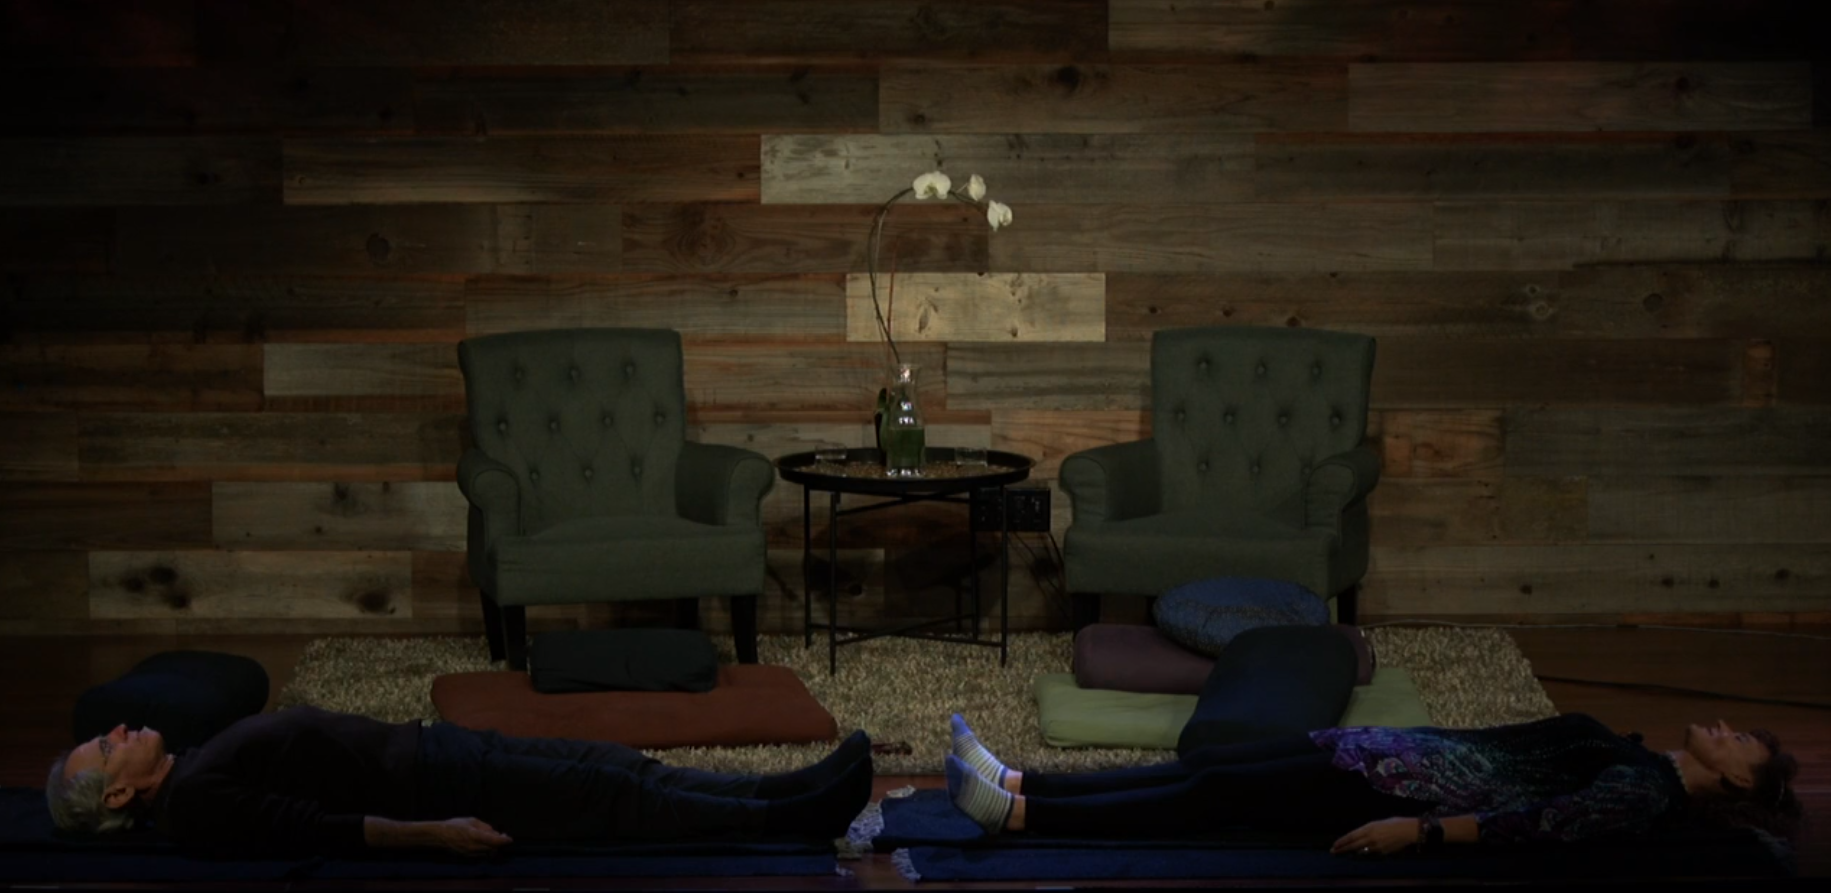 Michelle Reugebrink teaches meditation at a conference during a government shutdown / Screenshot https://vimeopro.com/user89997258/2019-usfs-summit/video/311447386